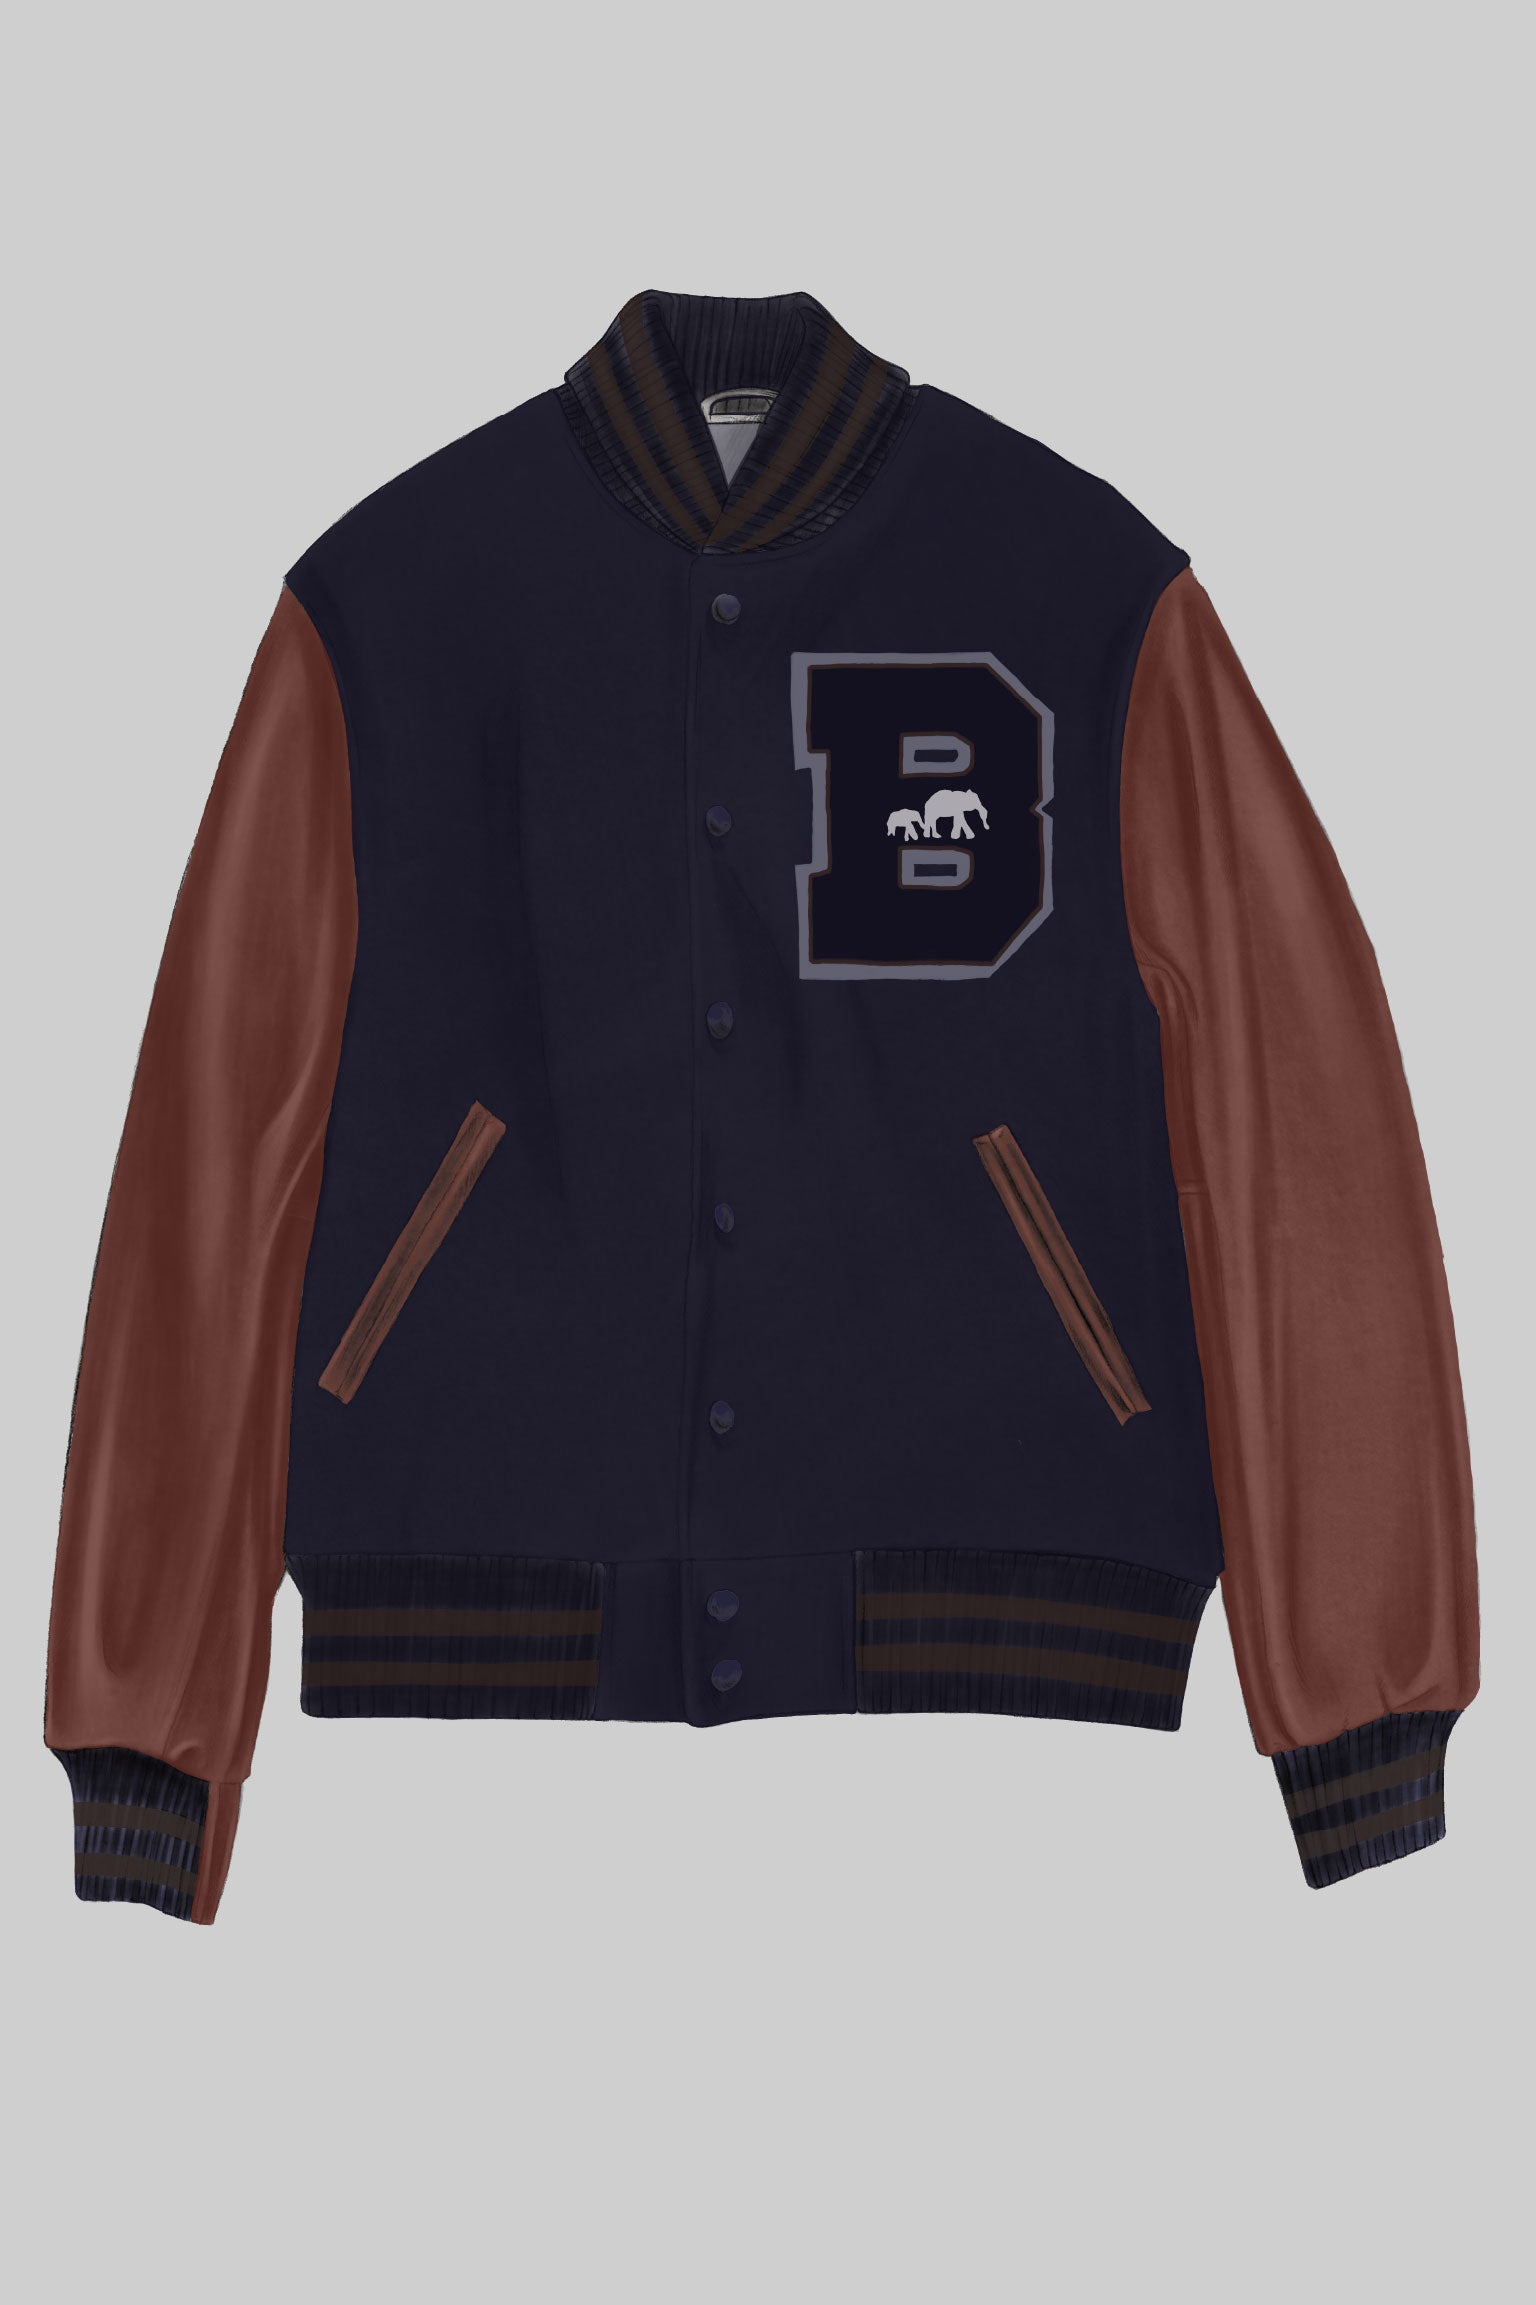 FINAL RELEASE: BKc Shelby Blues Varsity (S-3XL)